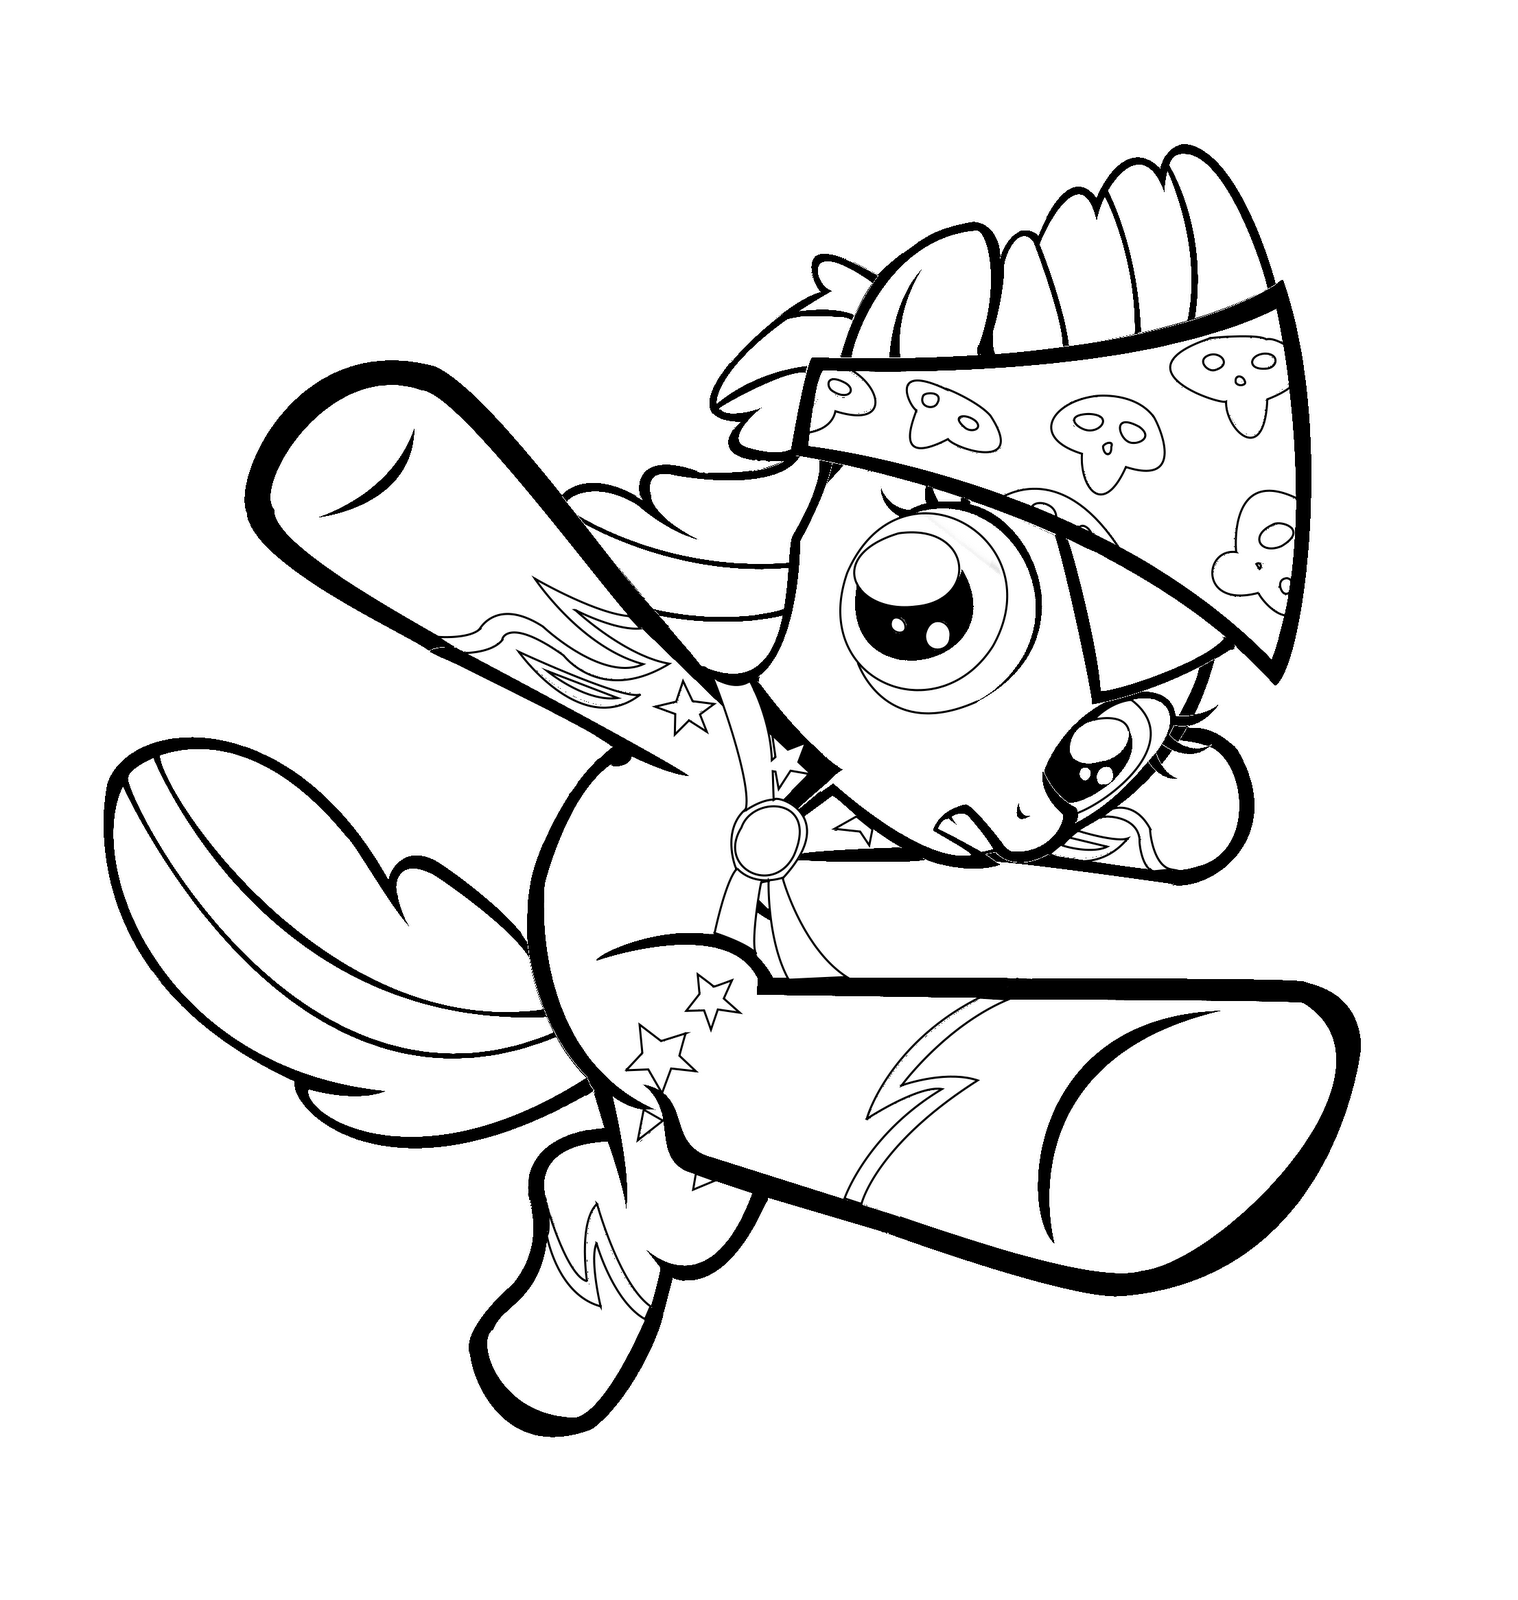 my little pony apple bloom coloring page free printable - HD 1518×1600